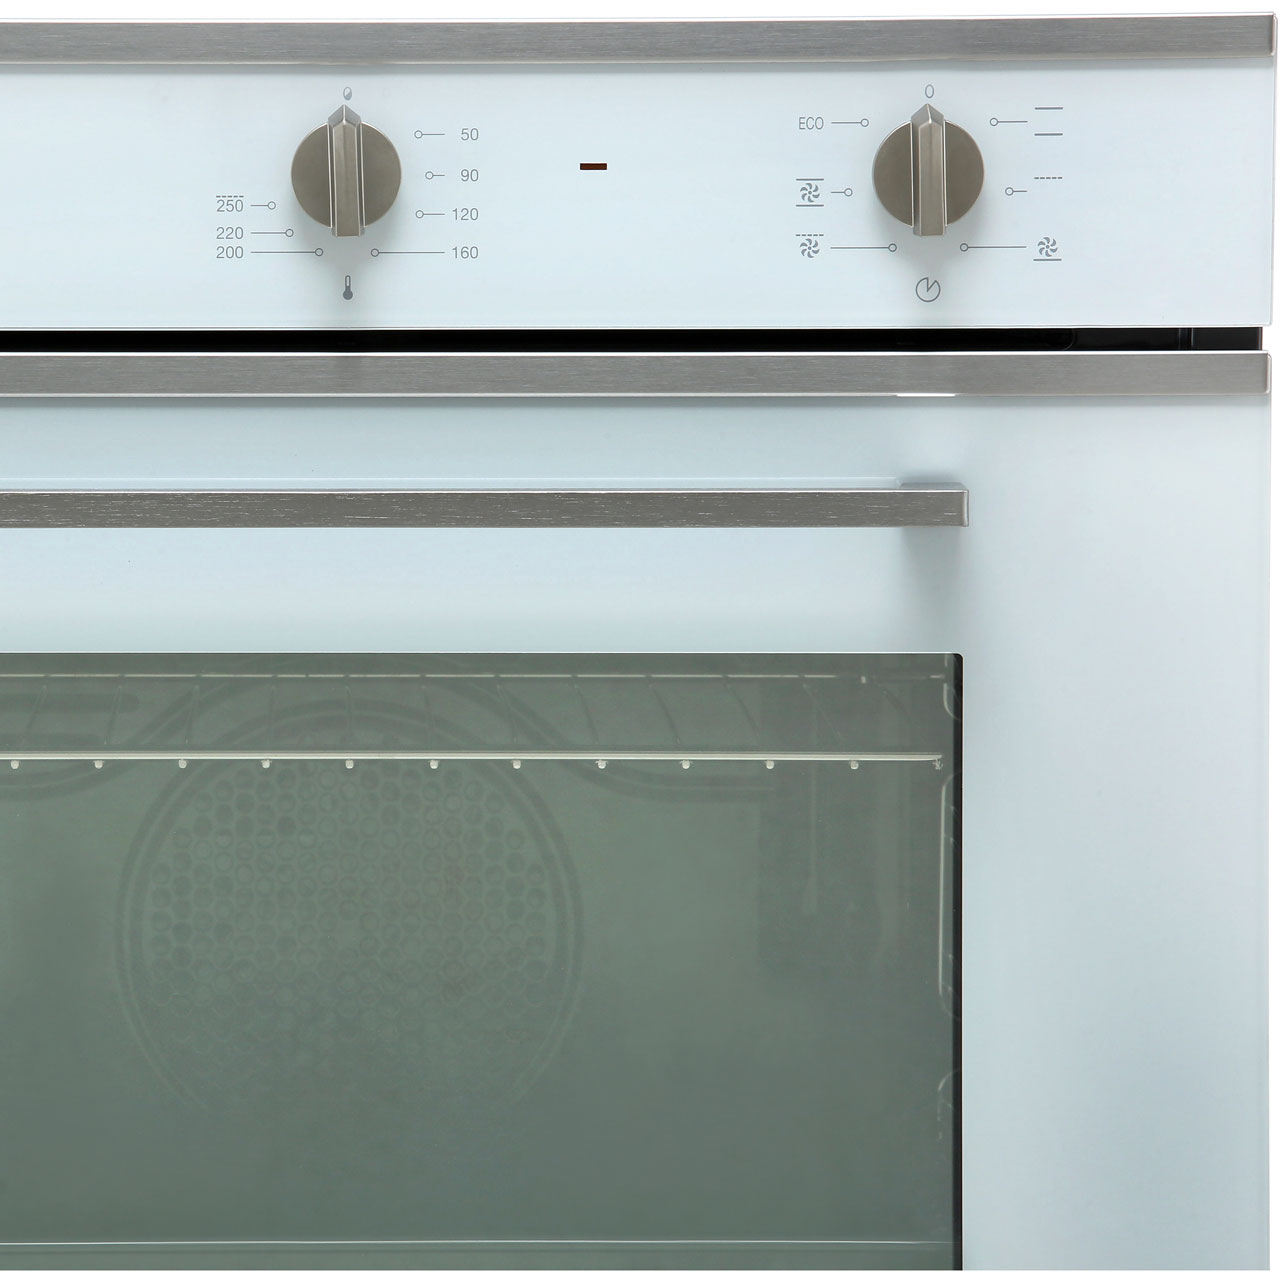 SF64M3VB_WH | Smeg Electric Single Oven | White | ao.com